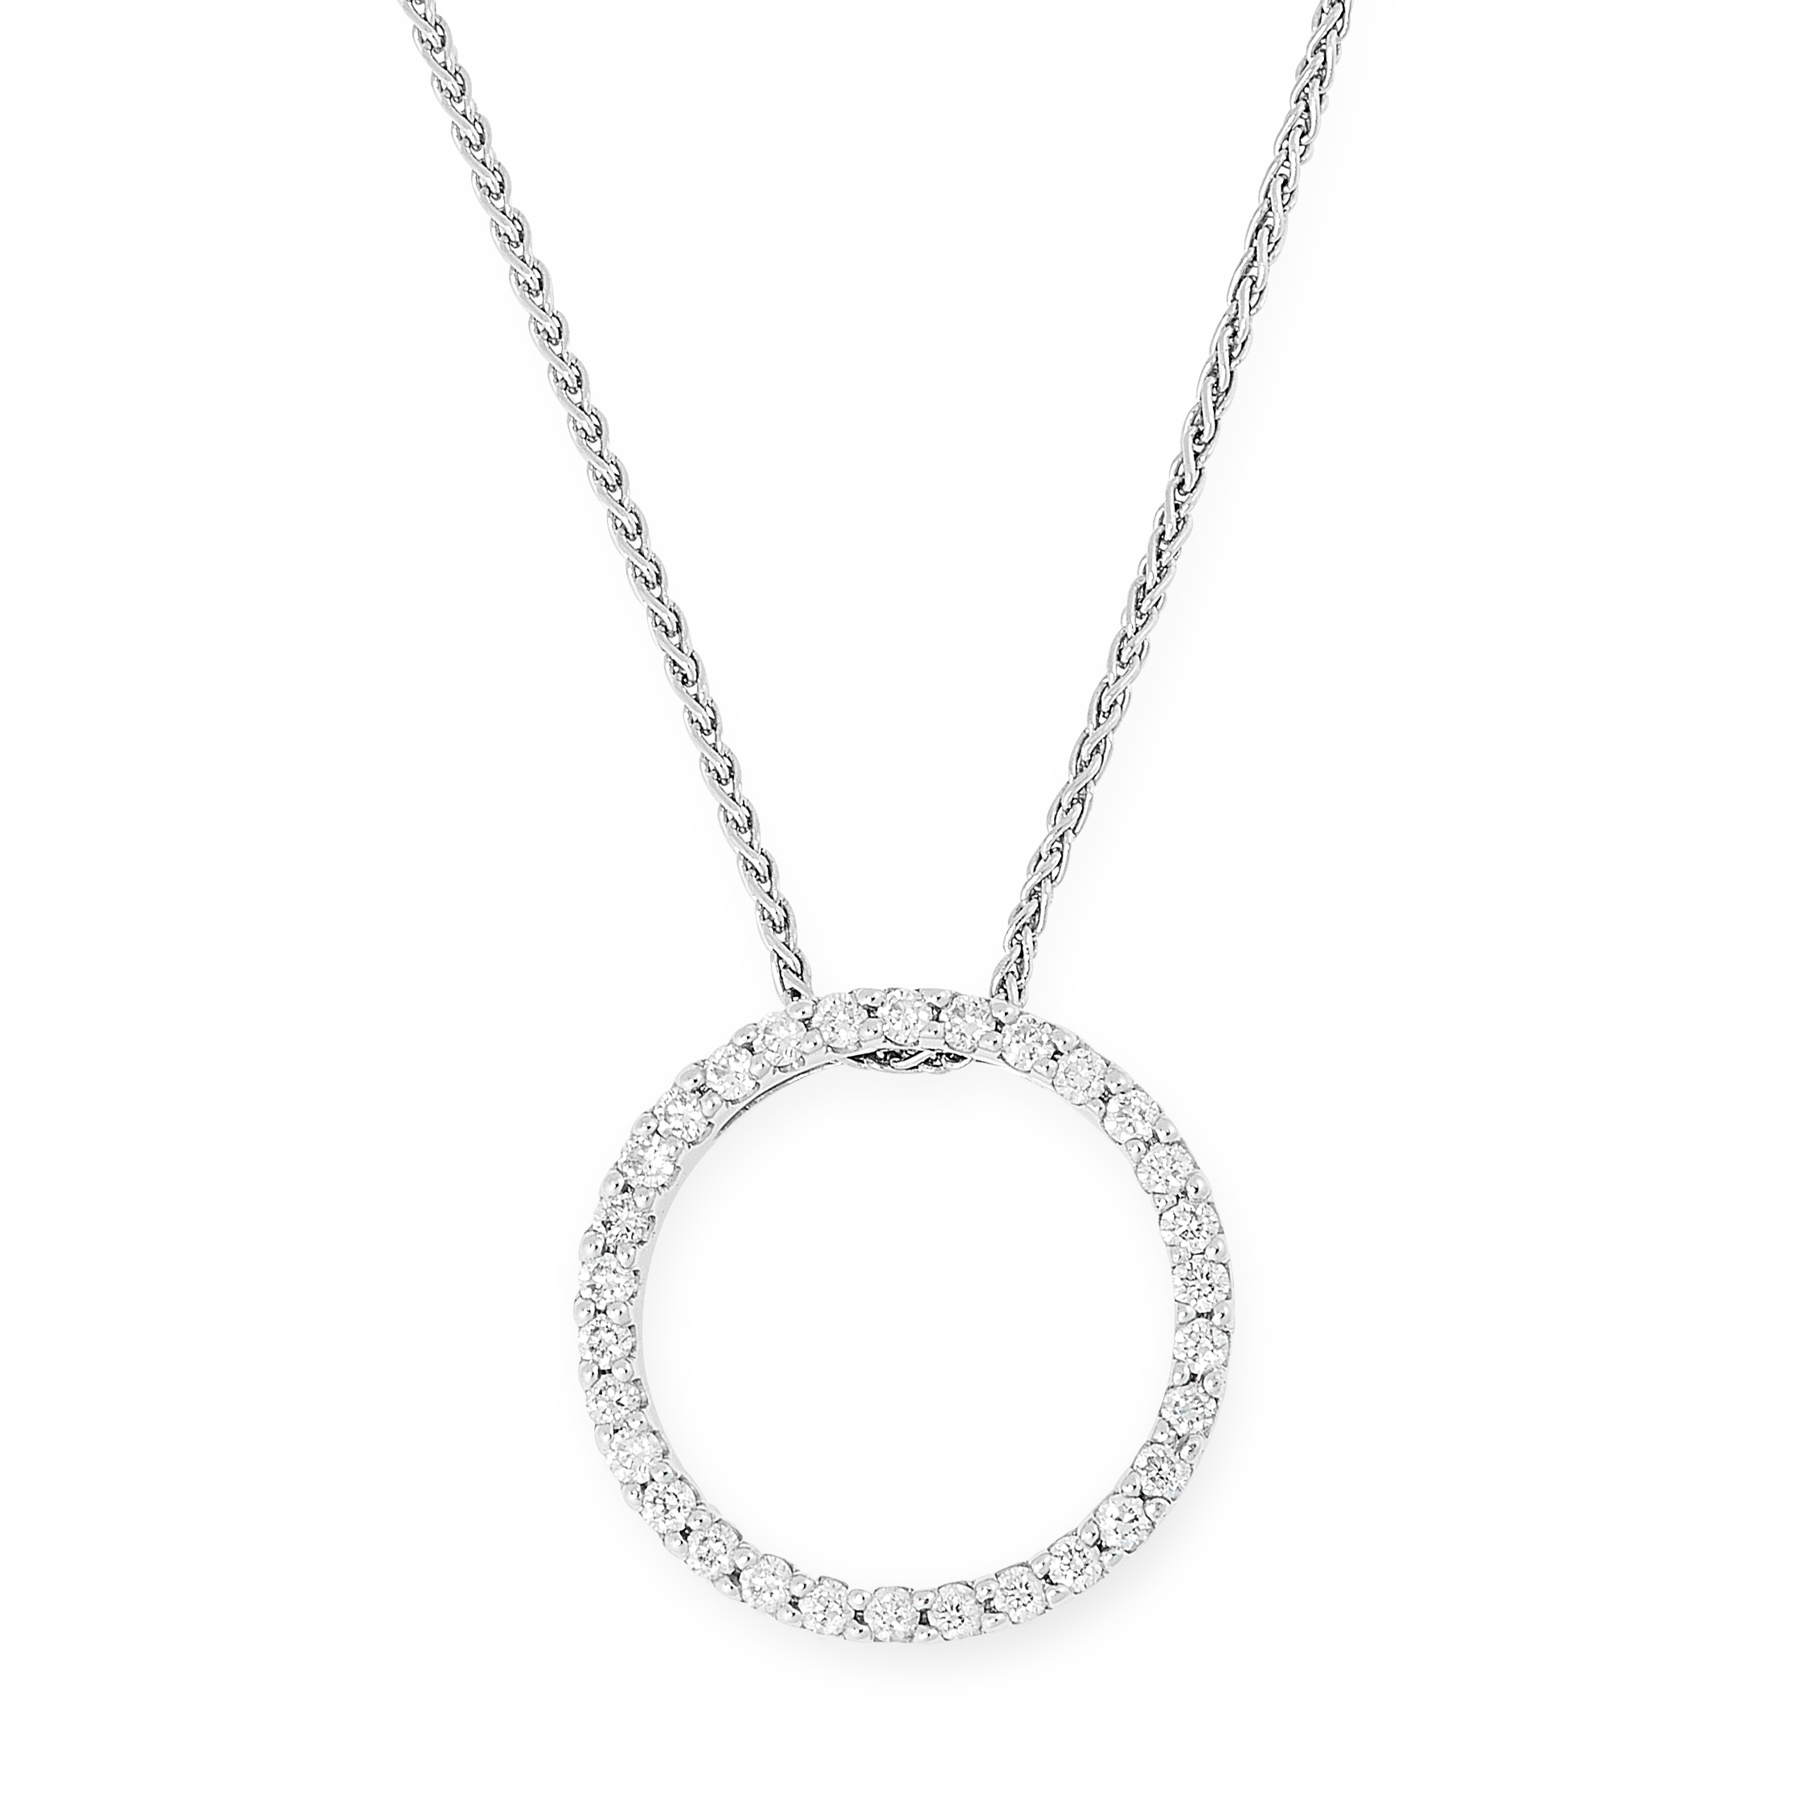 A DIAMOND PENDANT AND CHAIN in 18ct white gold, designed as an open circle set with round cut